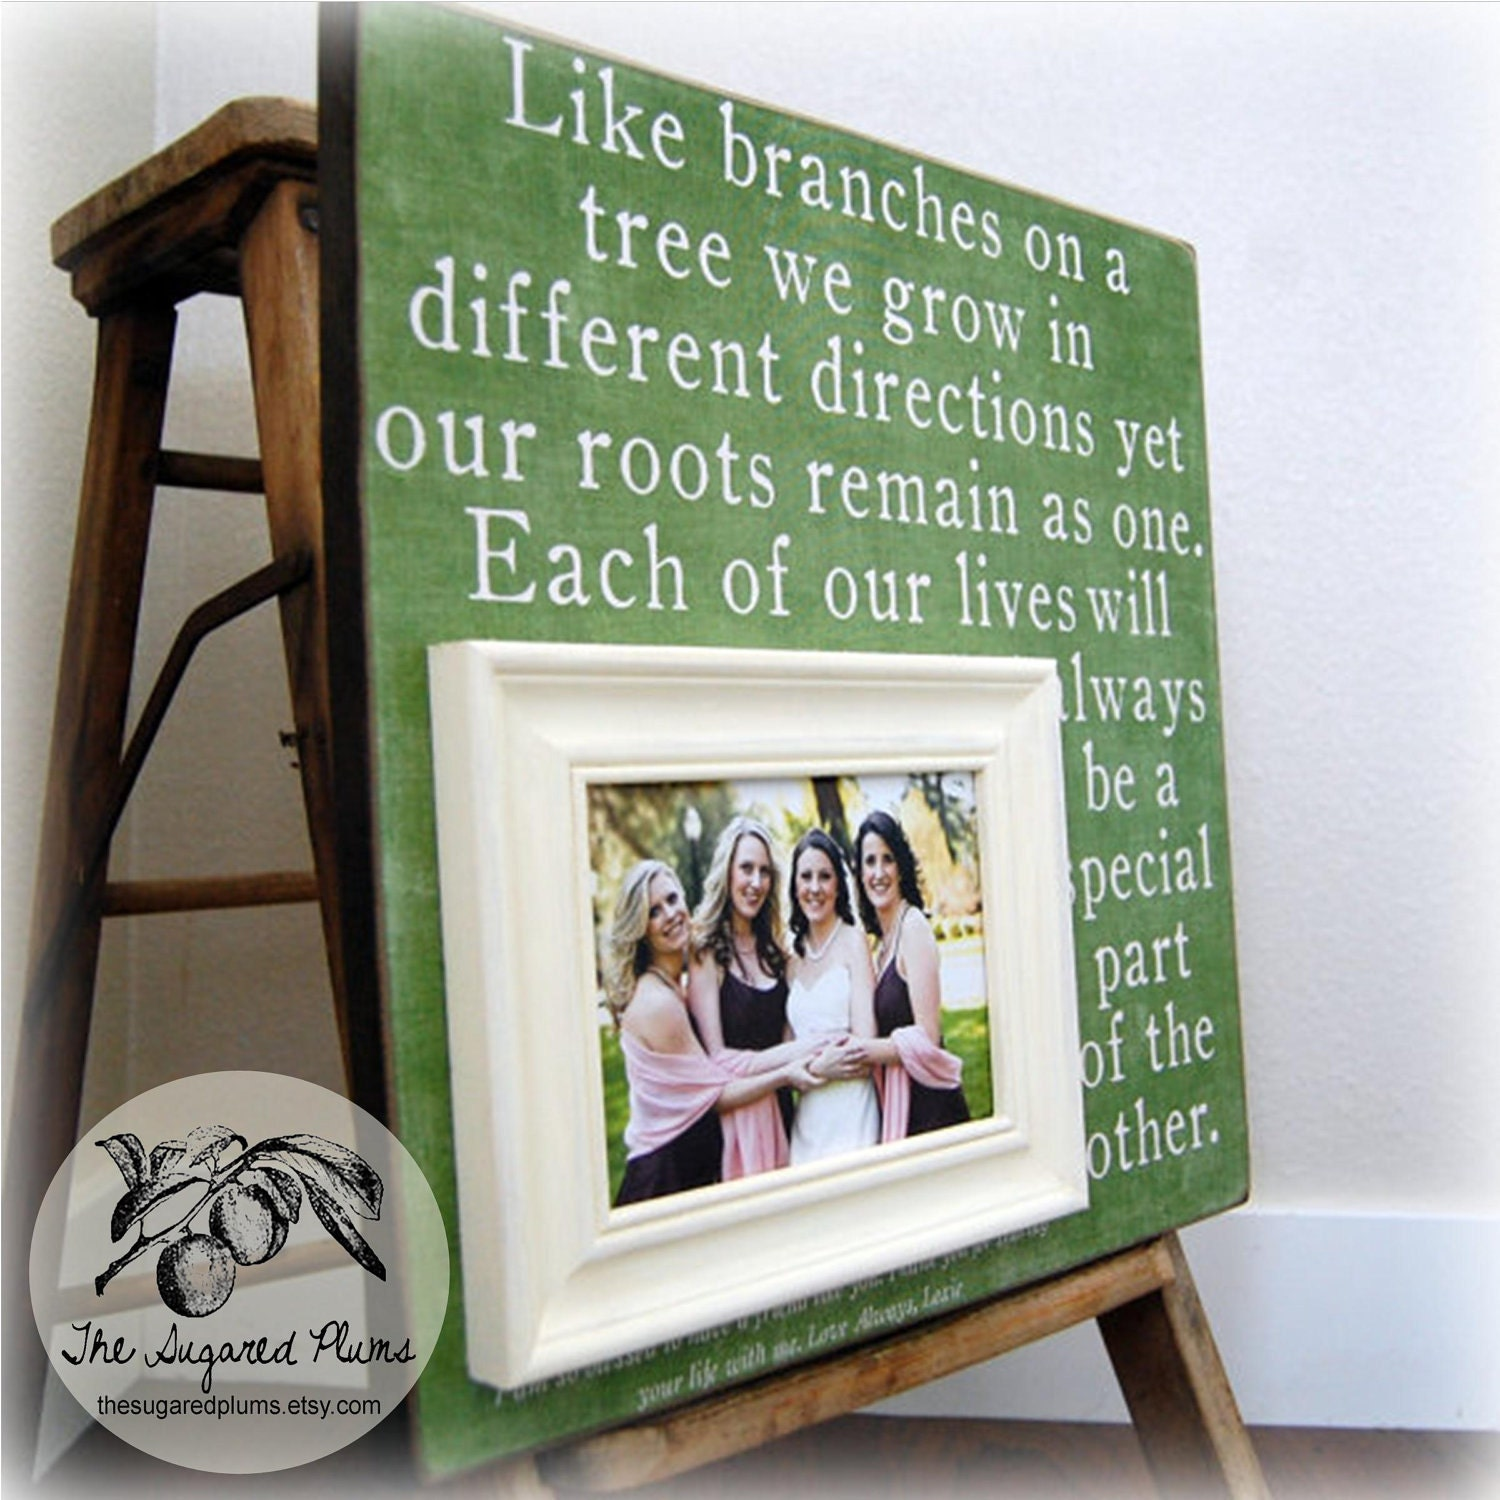 sister frame bridesmaid maid of honor sorority best friend personalized picture frame 16x16 branches on a tree the sugared plums